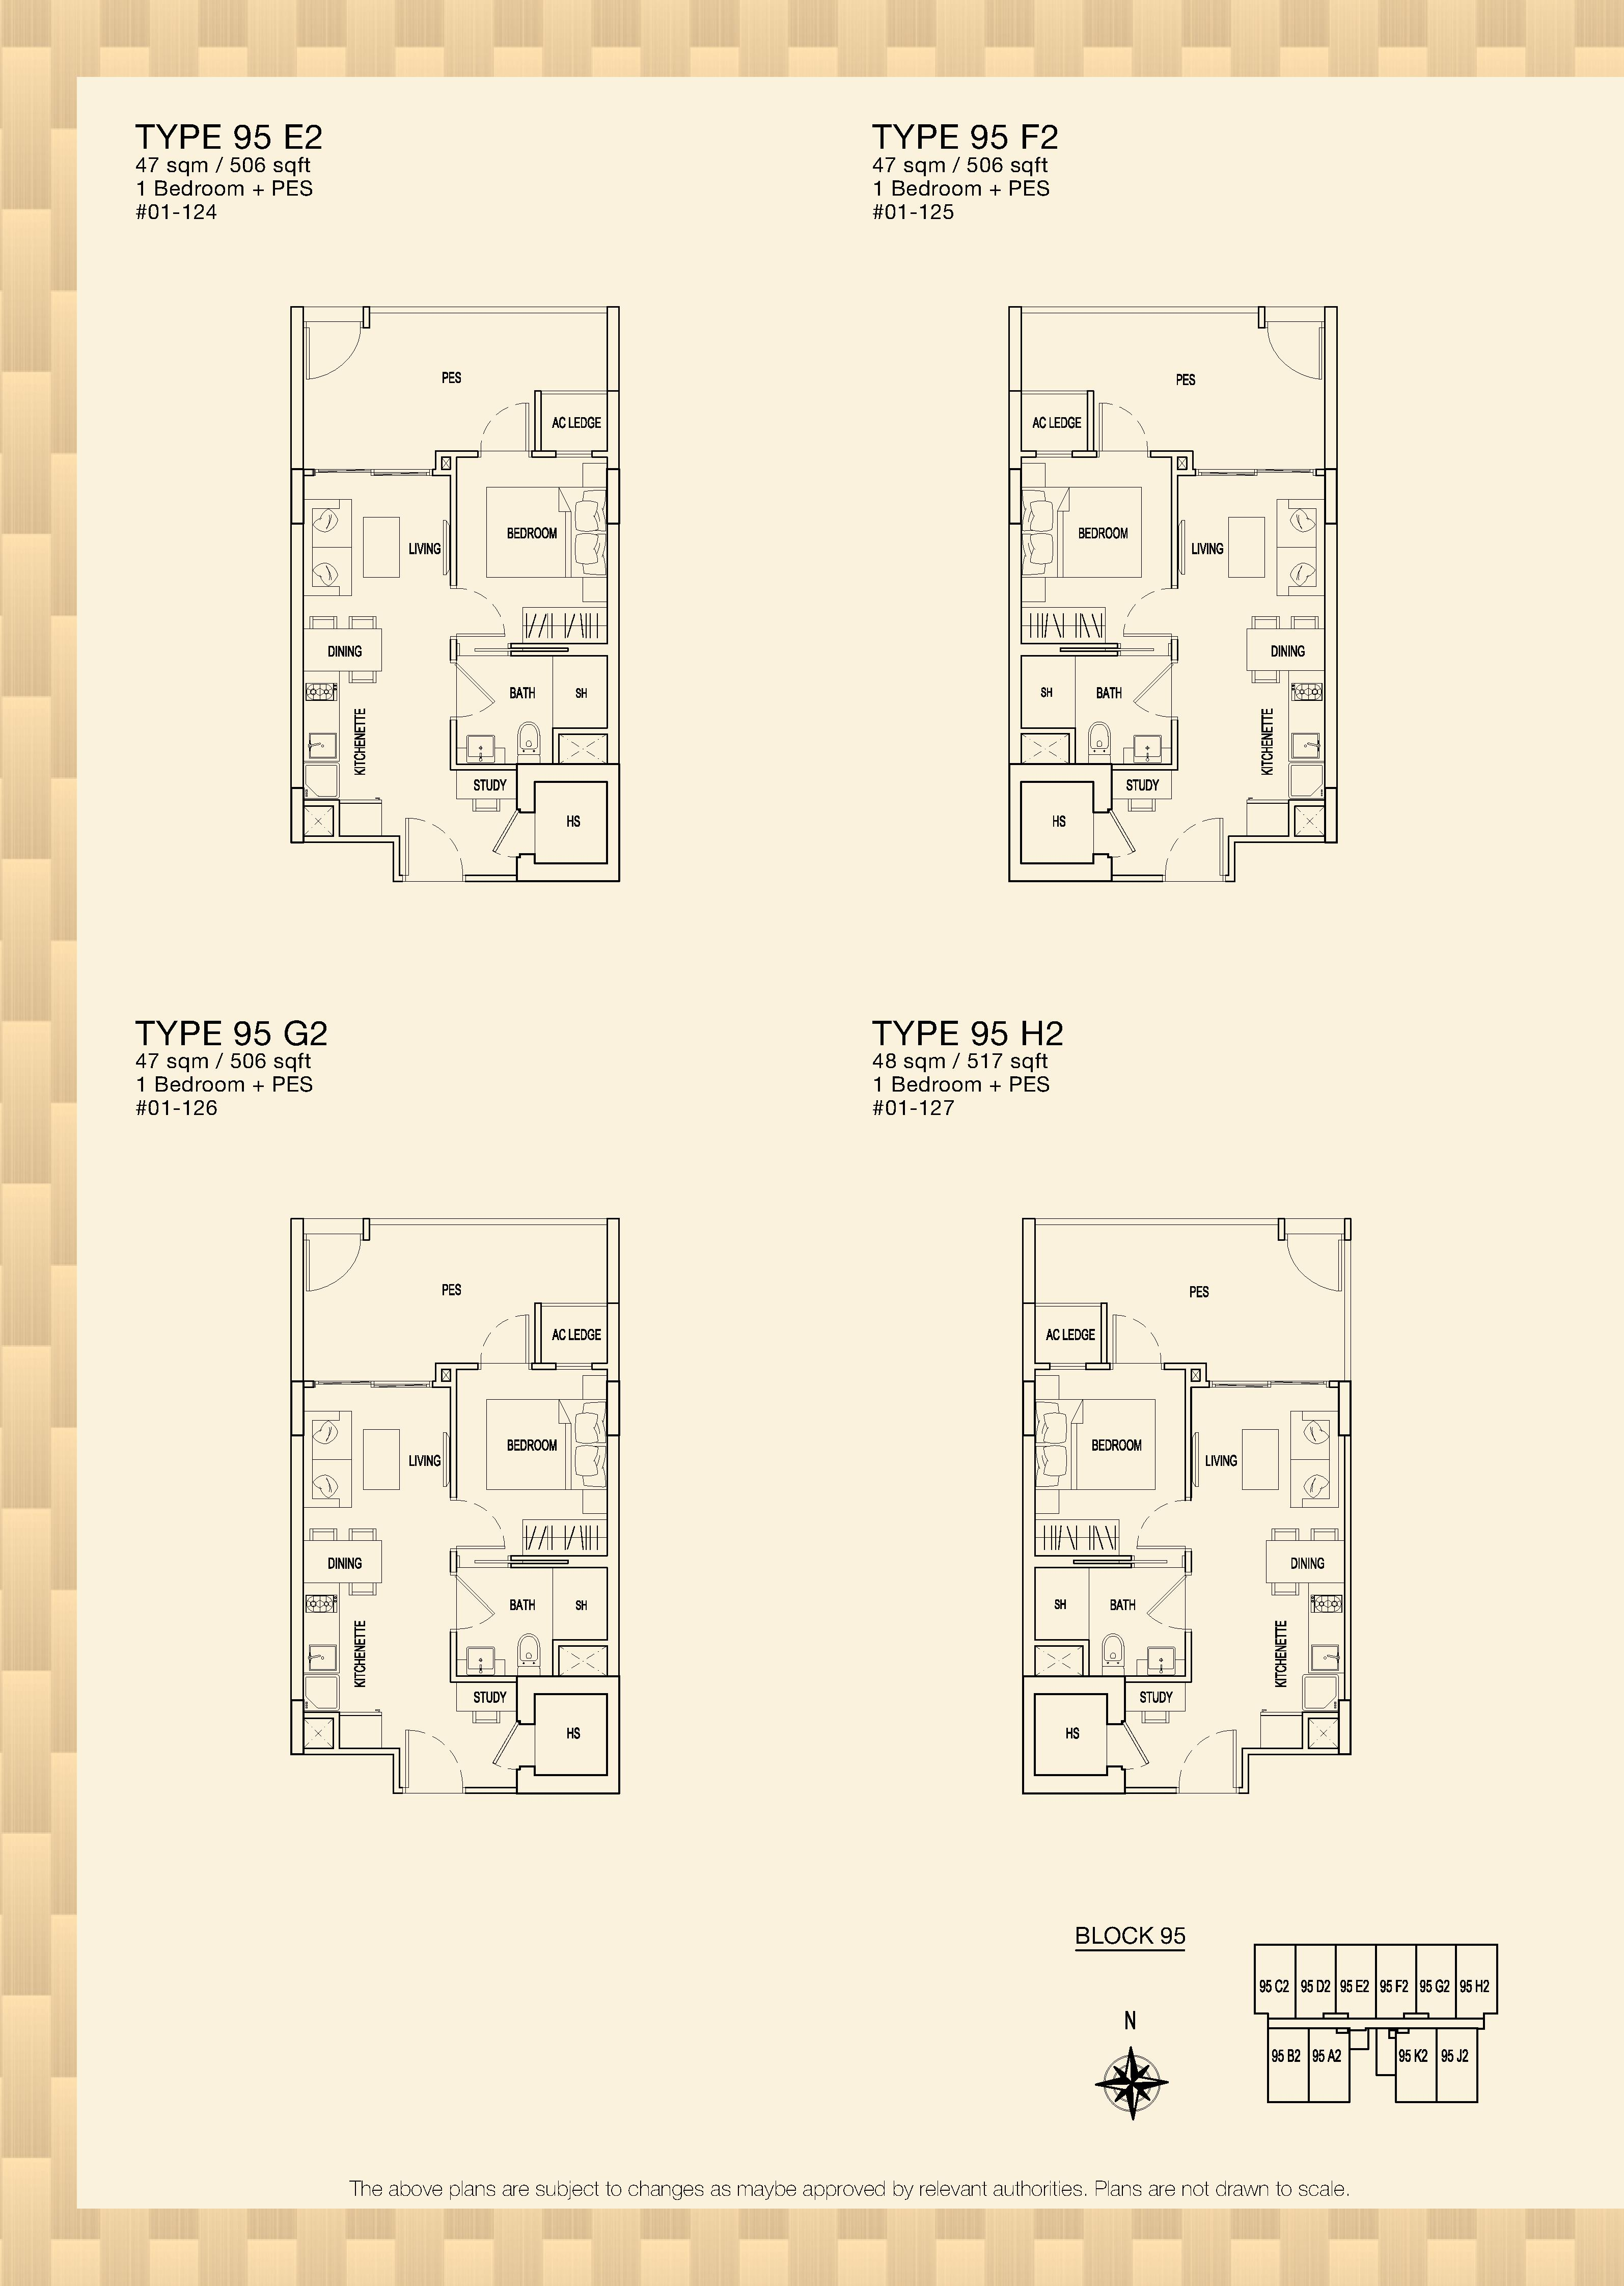 Parc Rosewood Block 95 1 Bedroom PES Type 95 E2, 95 F2, 95 G2